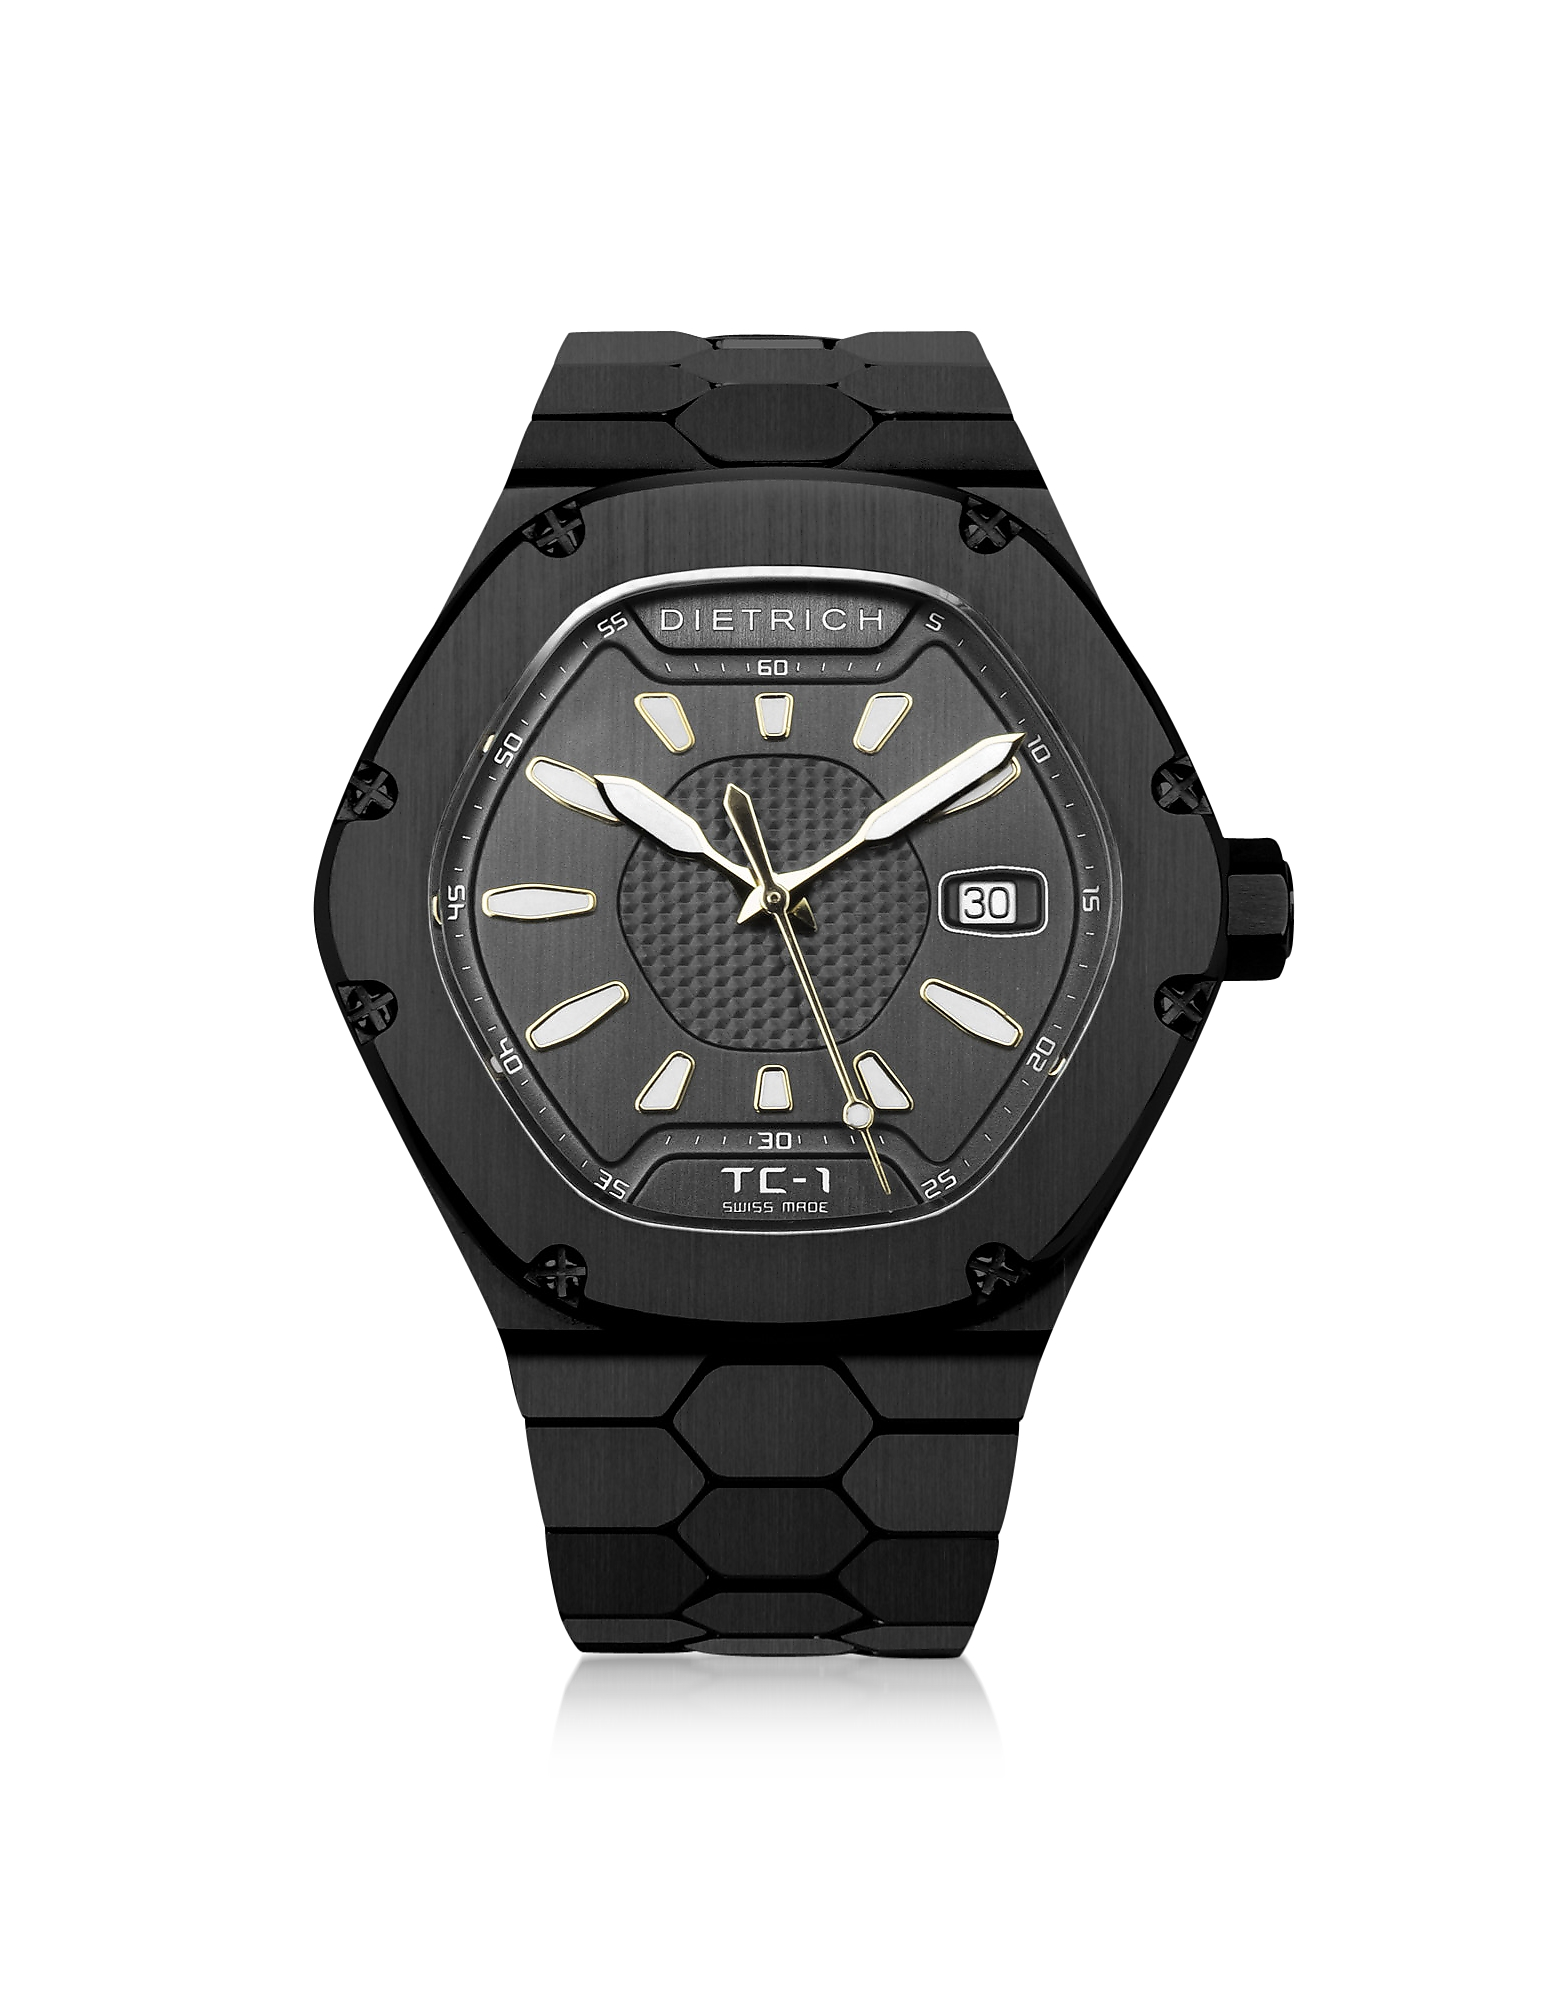 Dietrich Men's Watches, TC-1 Black PVD Stainless Steel w/White Luminova and Gray Dial